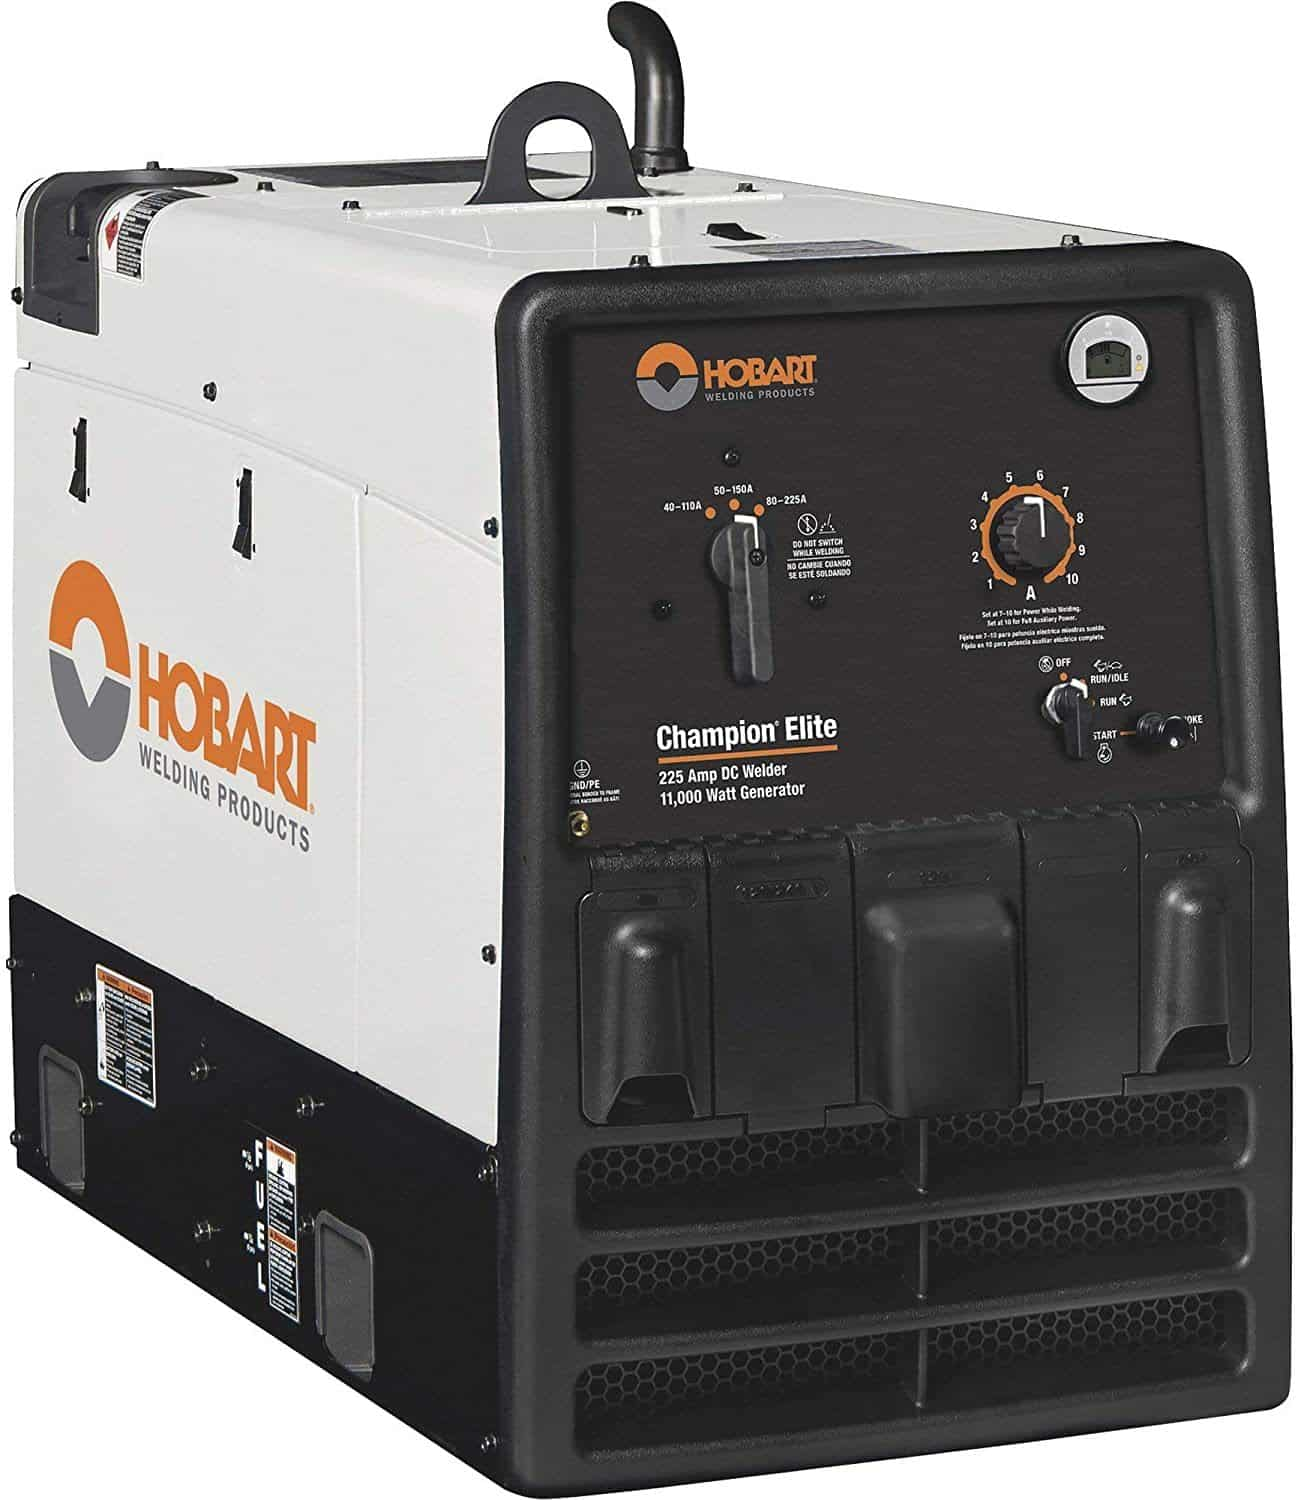 HOBART Champion Elite Welder Generator